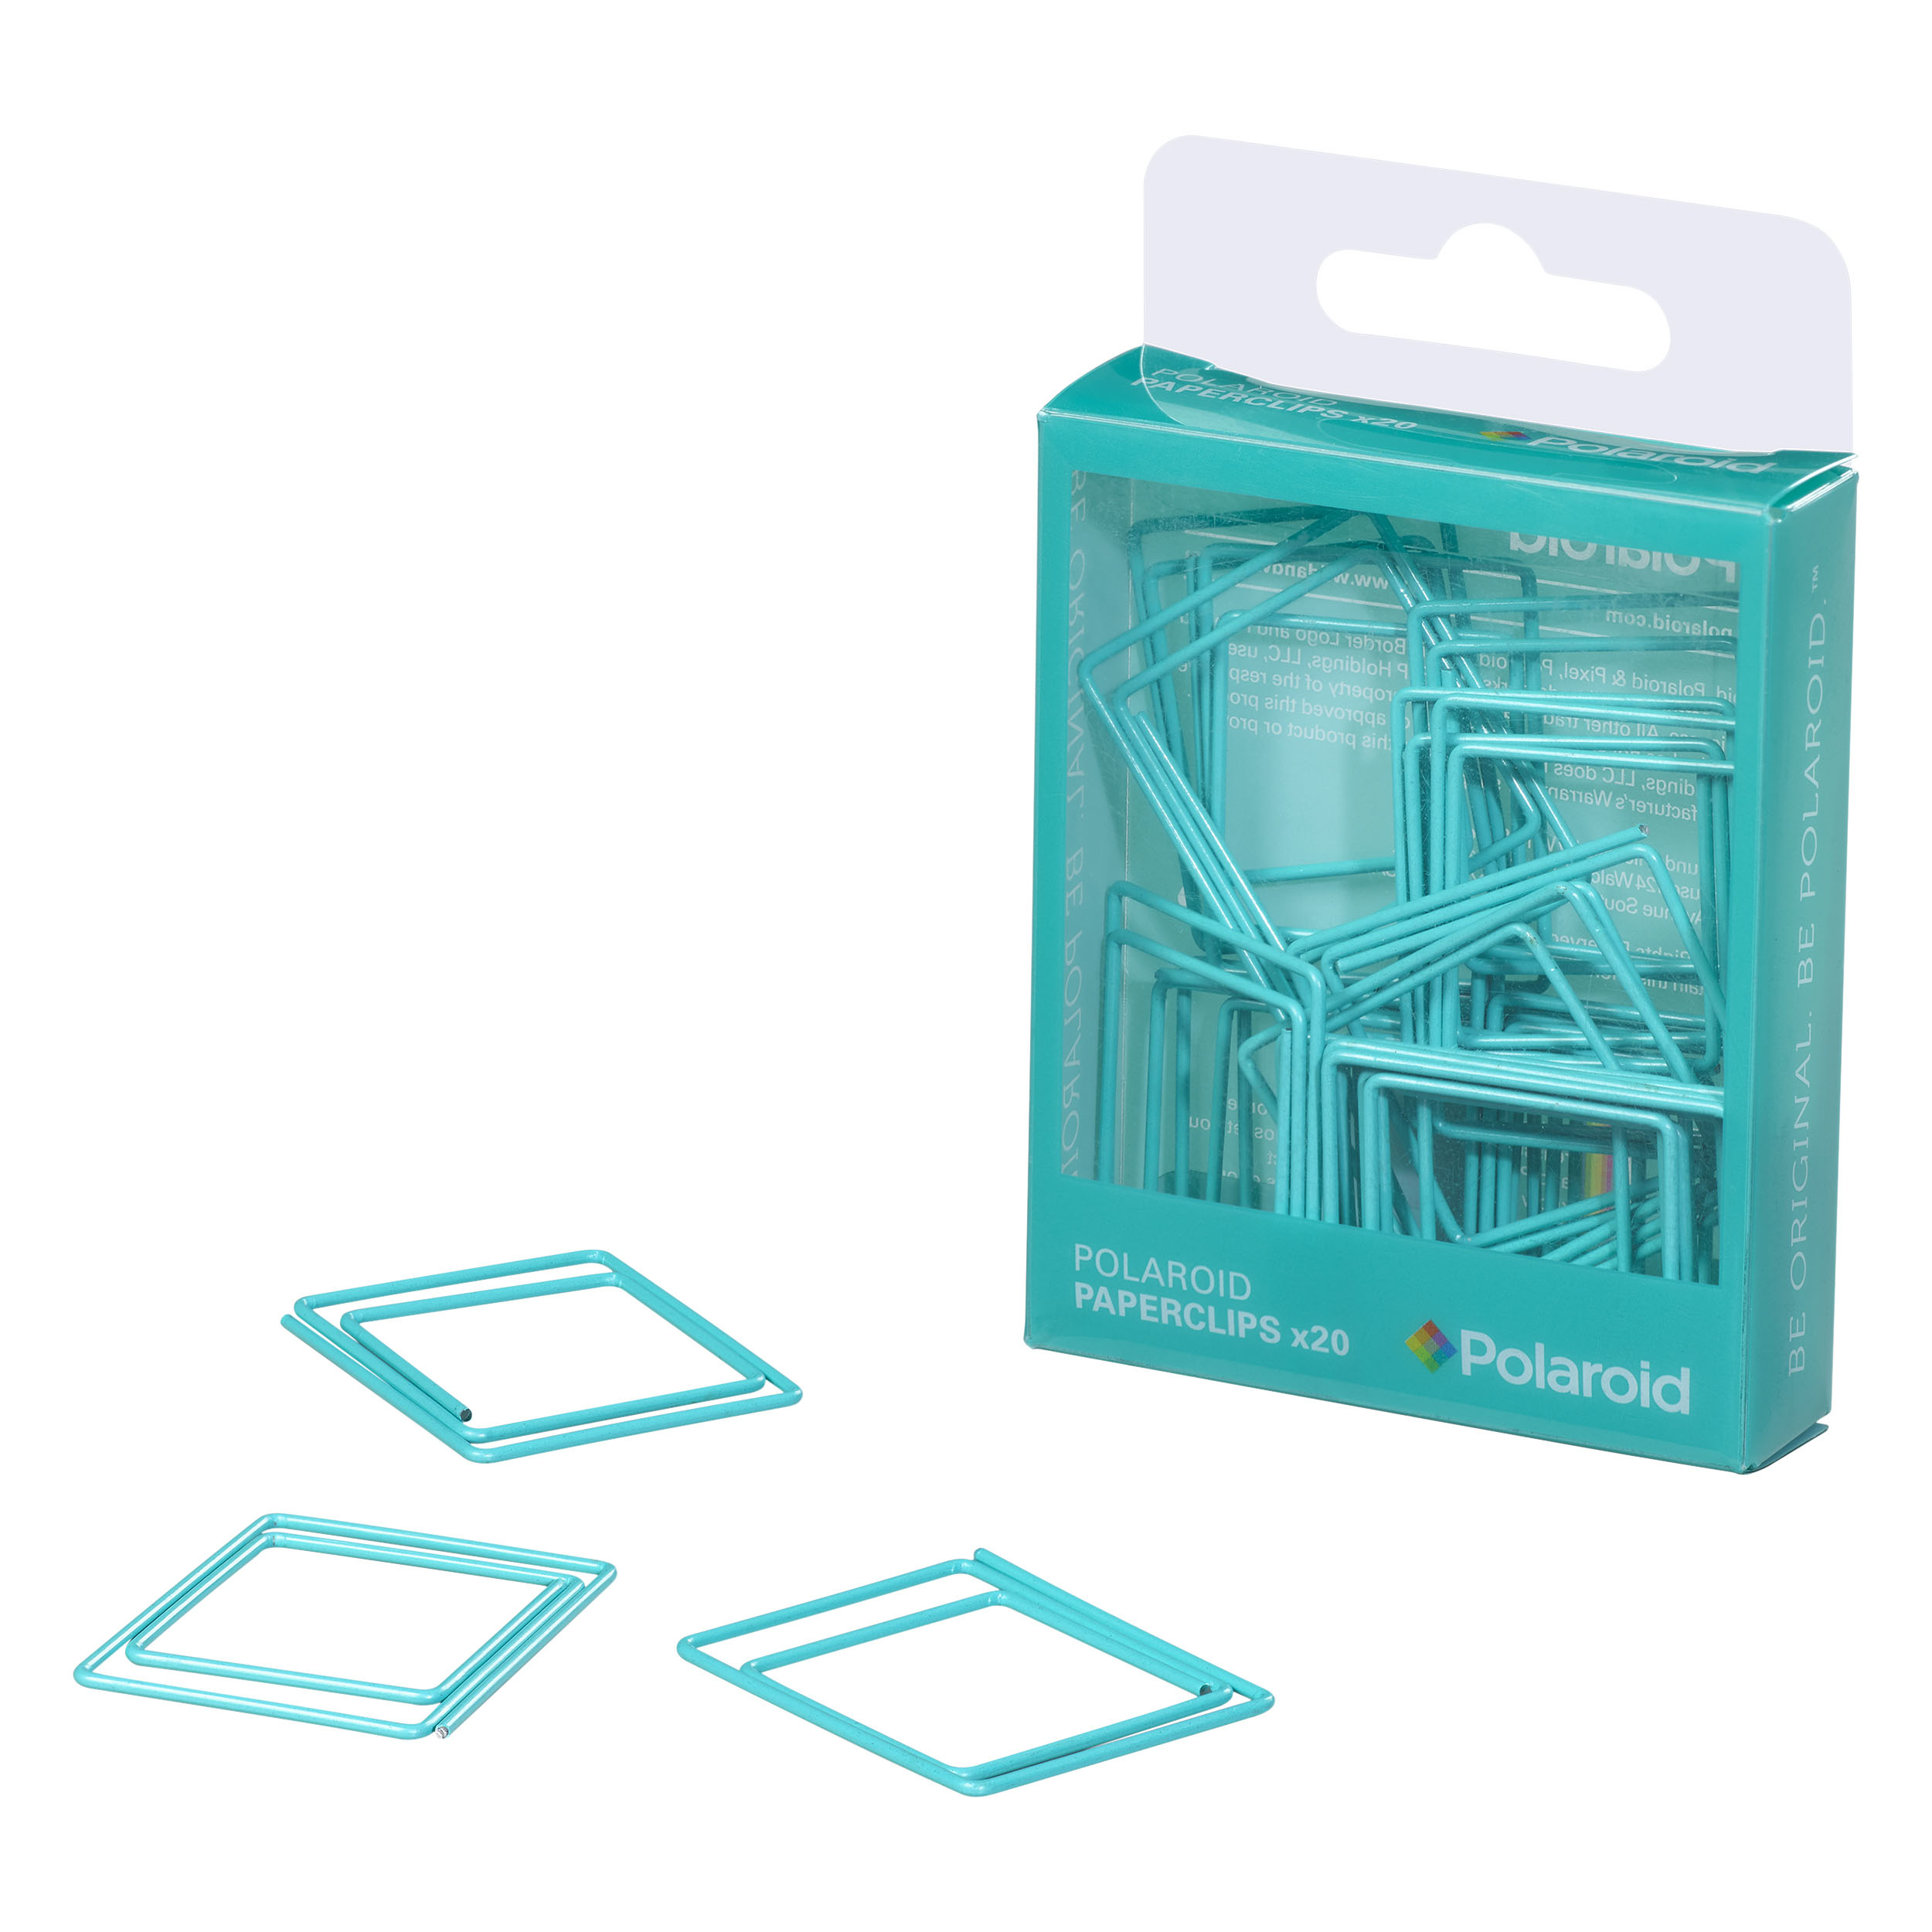 Turquoise Paperclips